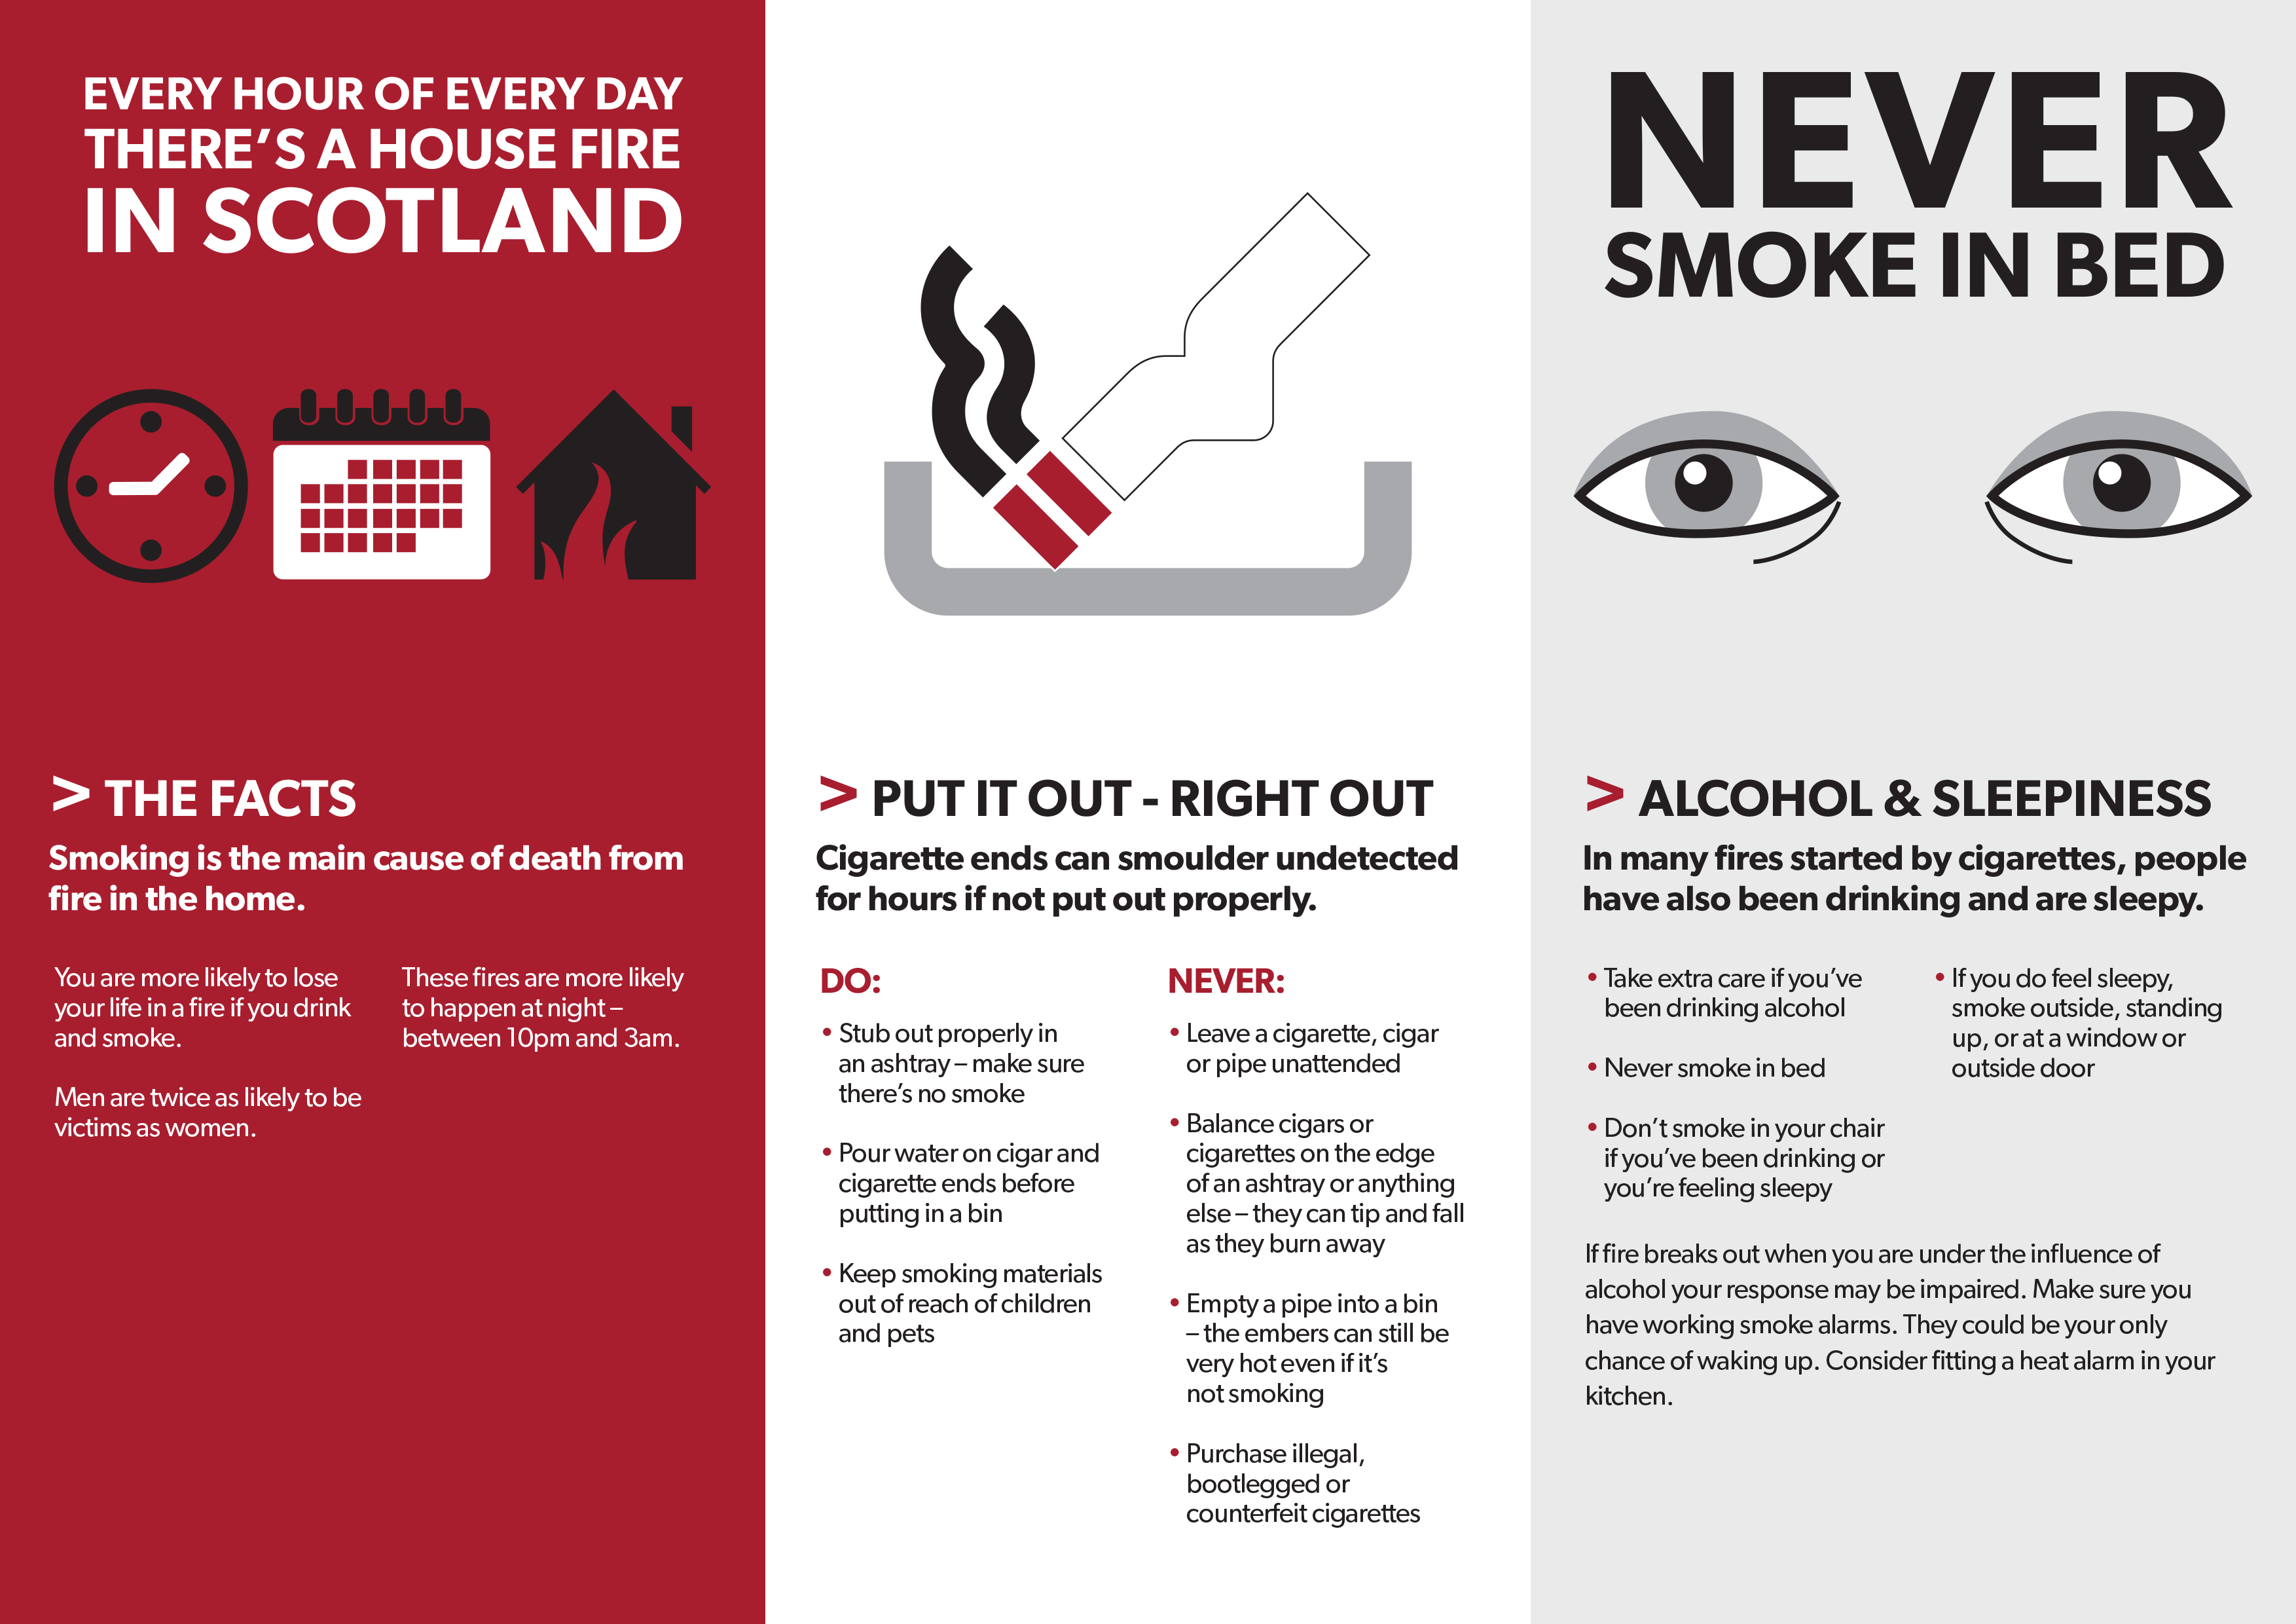 Fire Safety - A message from Chief Executive James Strang - Parkhead ...